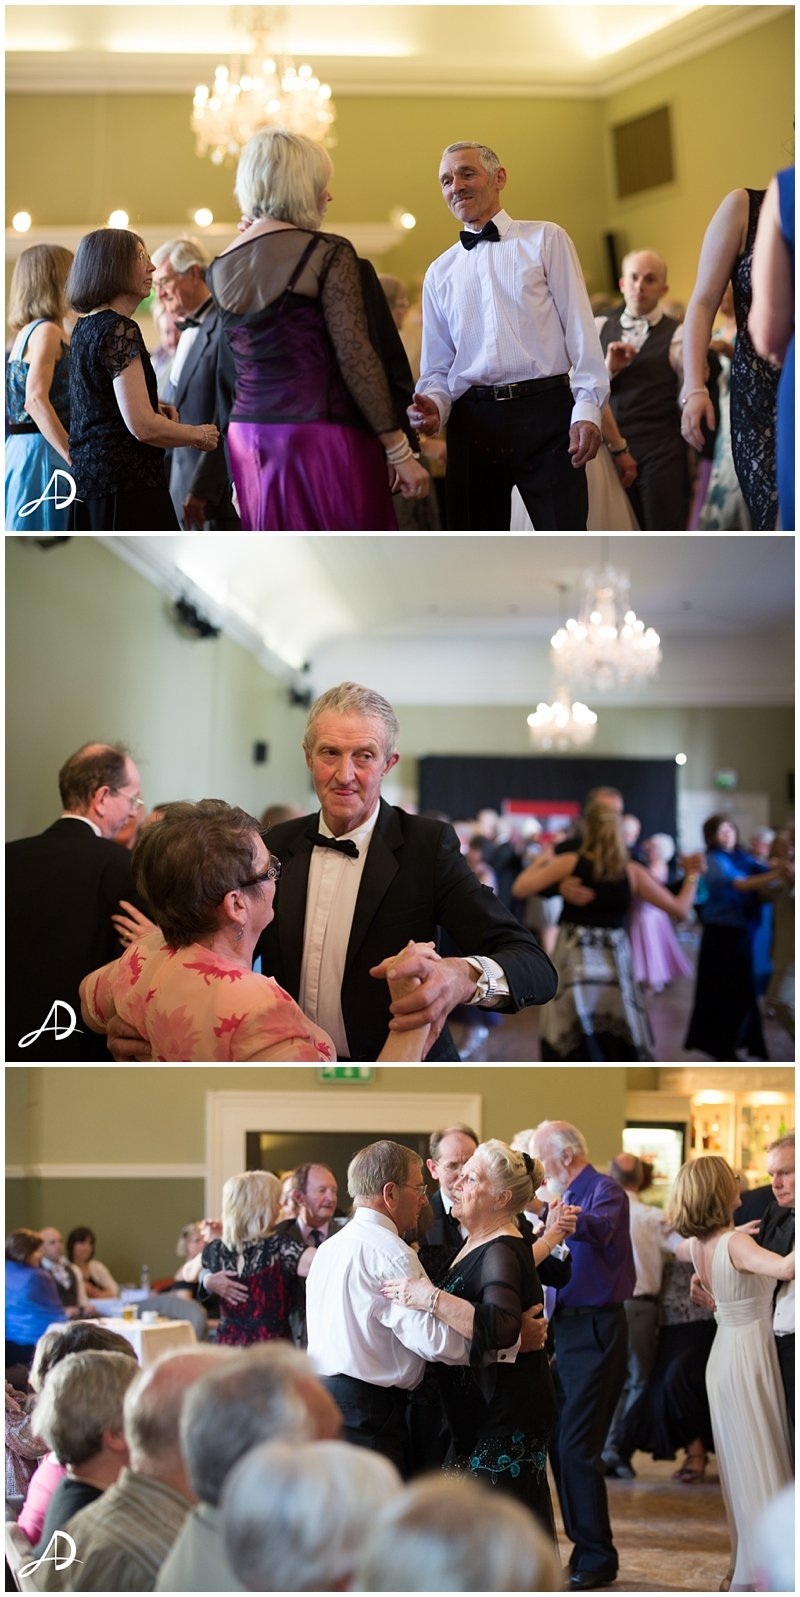 VIENNESE BALLROOM DANCE AT THE ASSEMBLY HOUSE, NORWICH - NORFOLK EVENT PHOTOGRAPHER 12